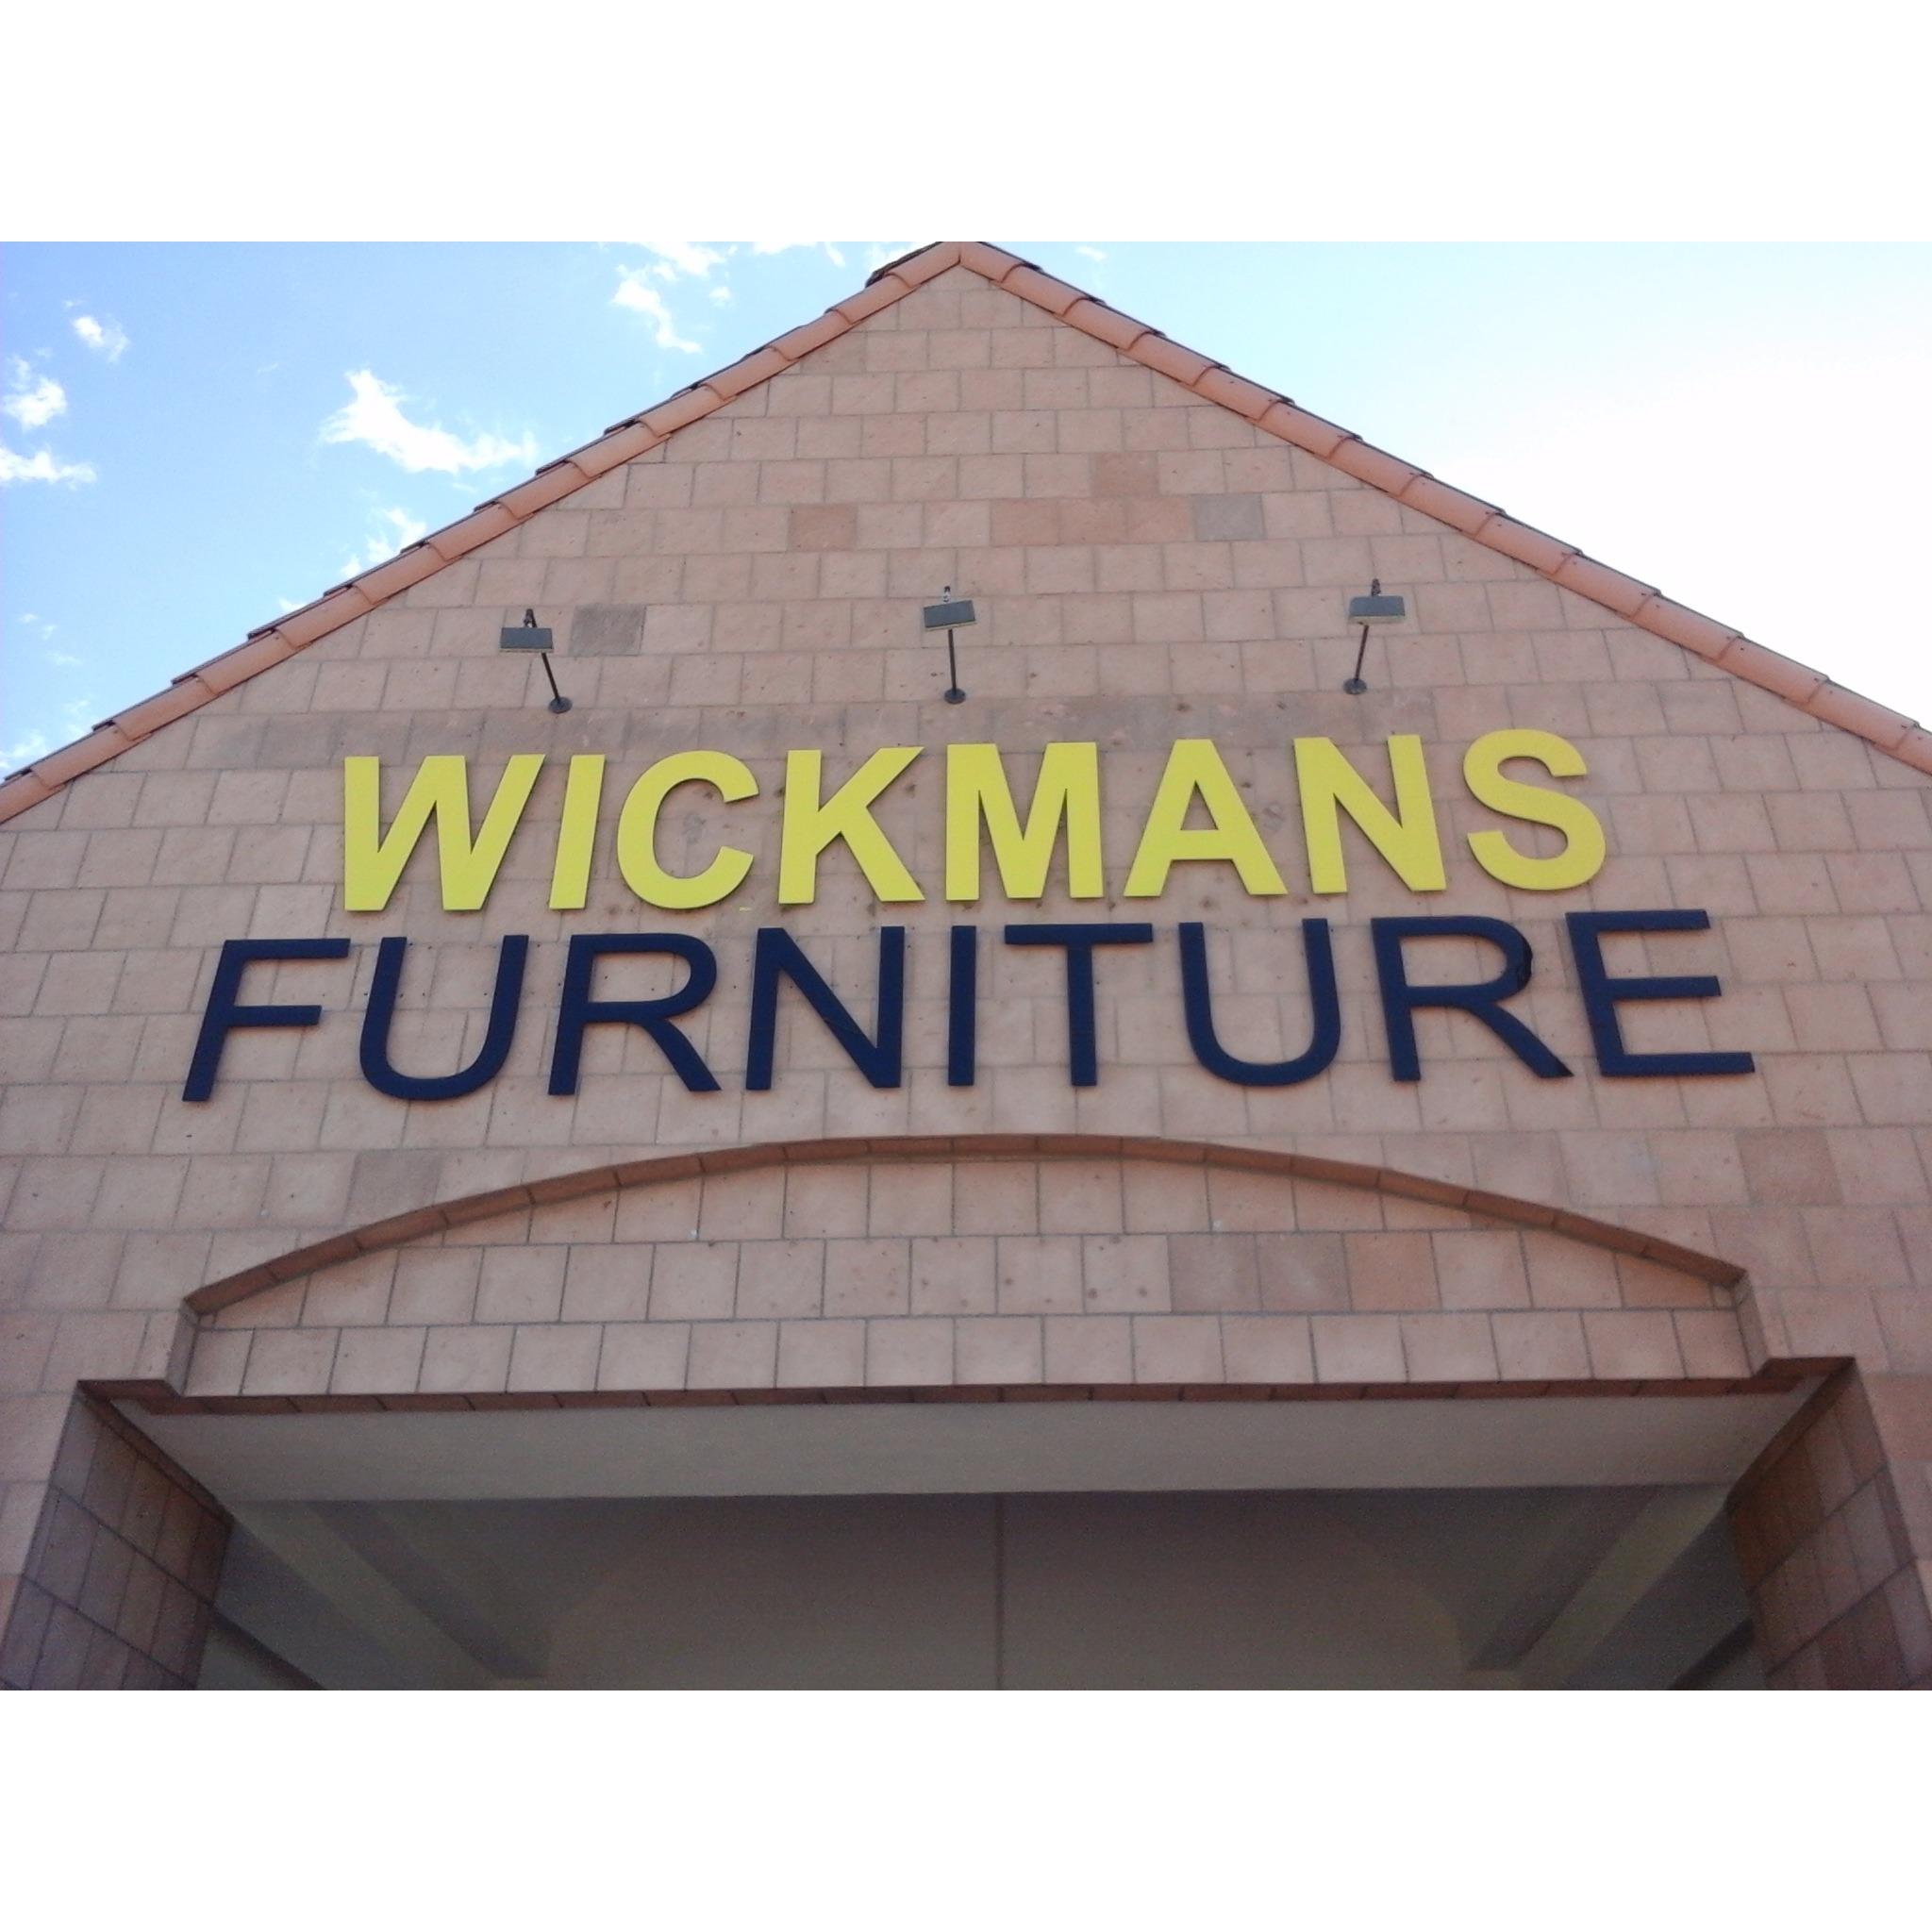 Wickmans Furniture